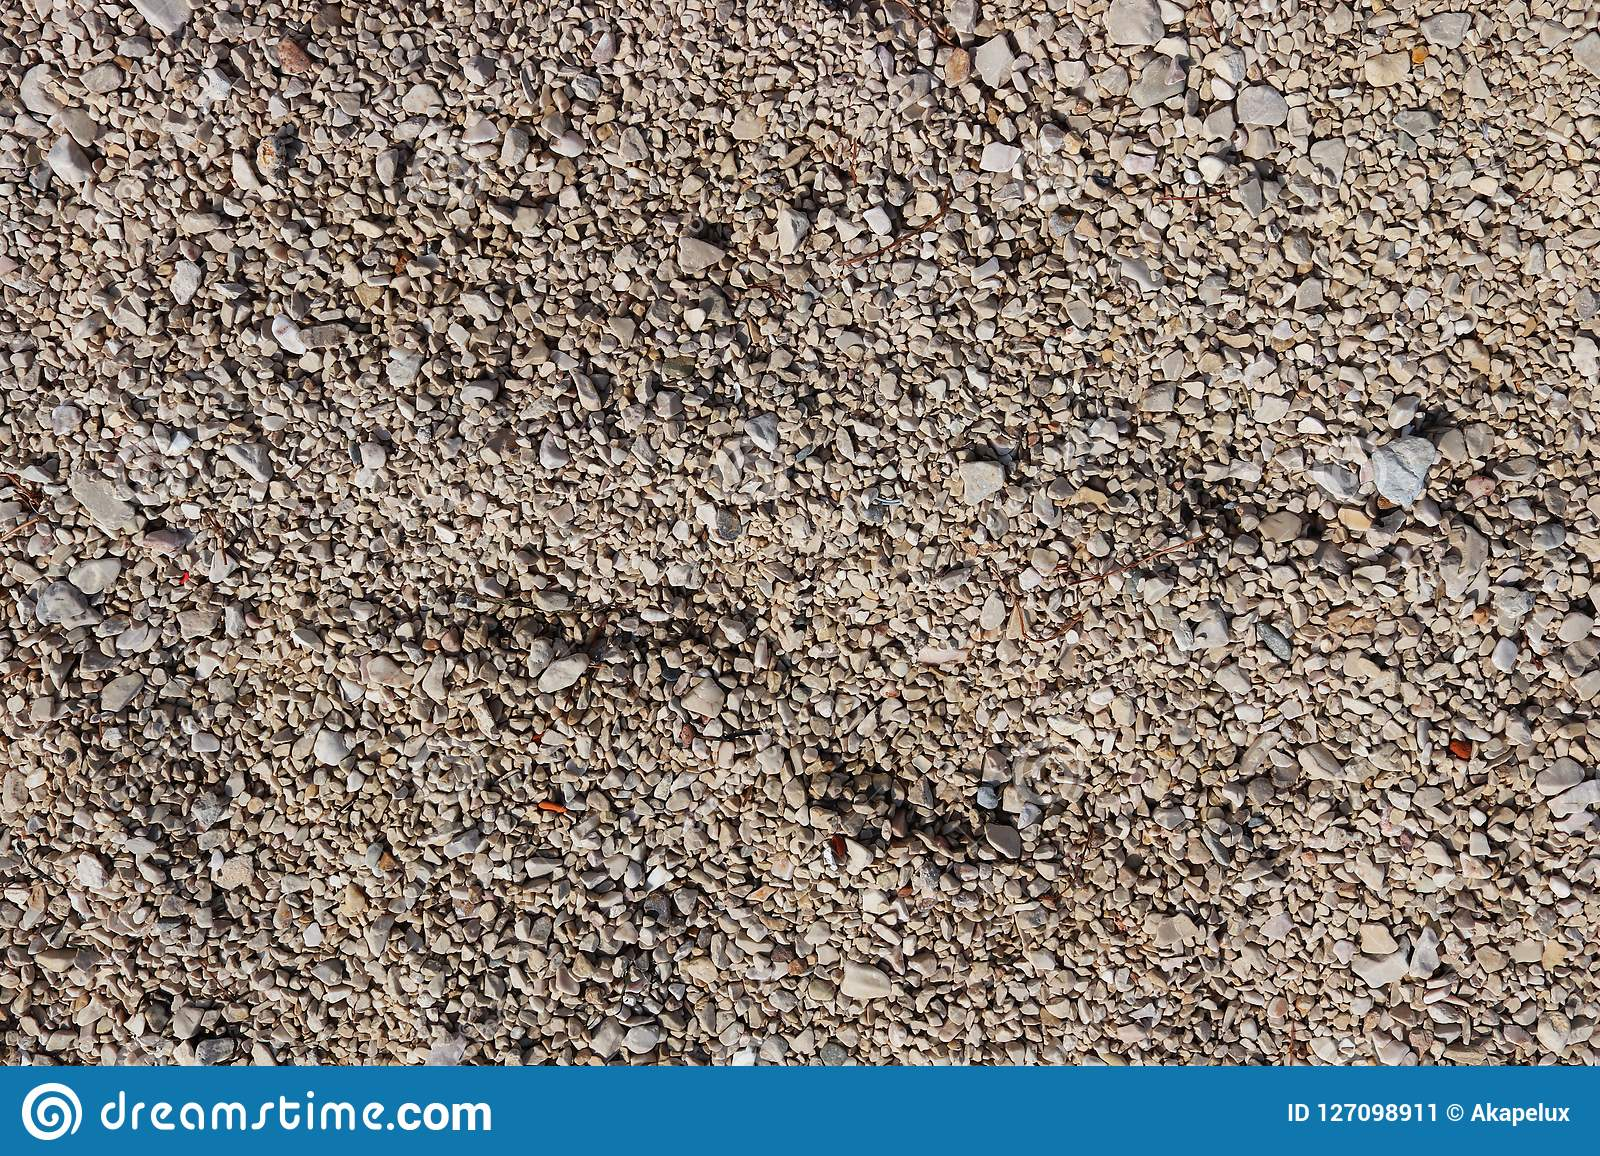 Fine pebbles of a brown shade. Beach ground. Natural material for design, decoration and construction. Sanded granite and hard min